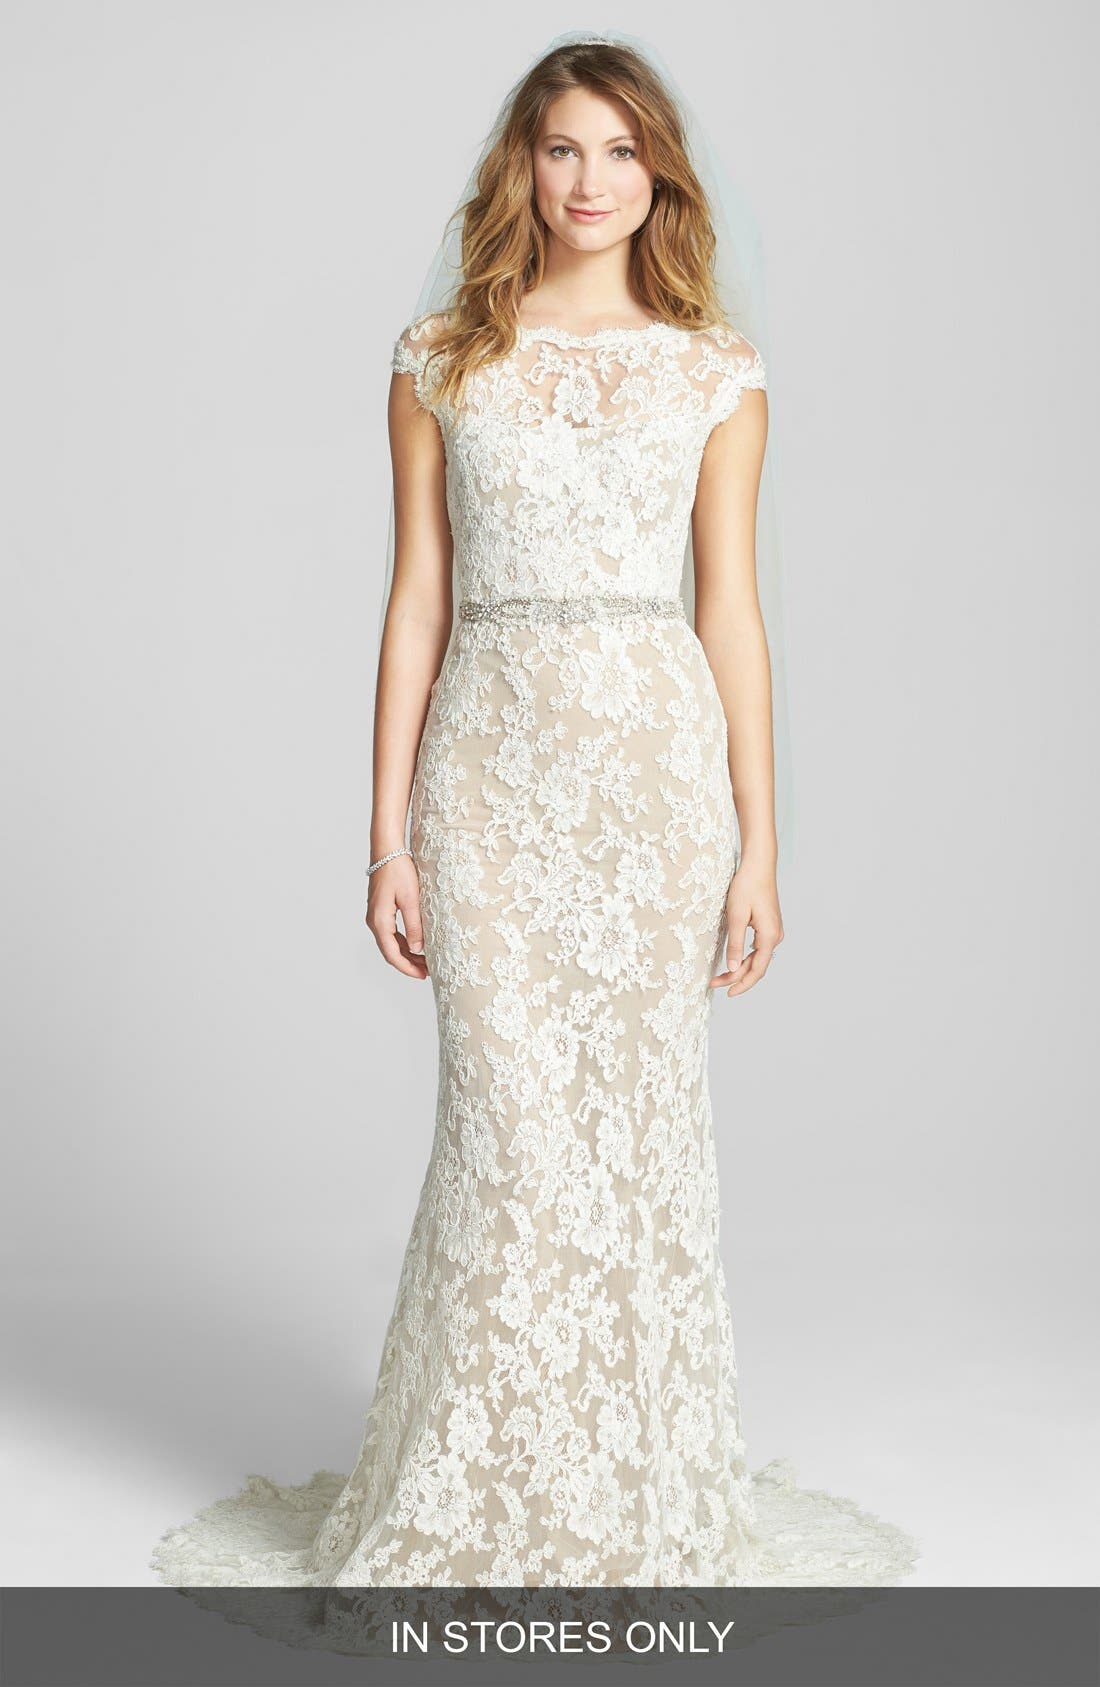 Main Image - Reem Acra 'Emma' Embroidered Waist Lace Column Gown (In Stores Only)